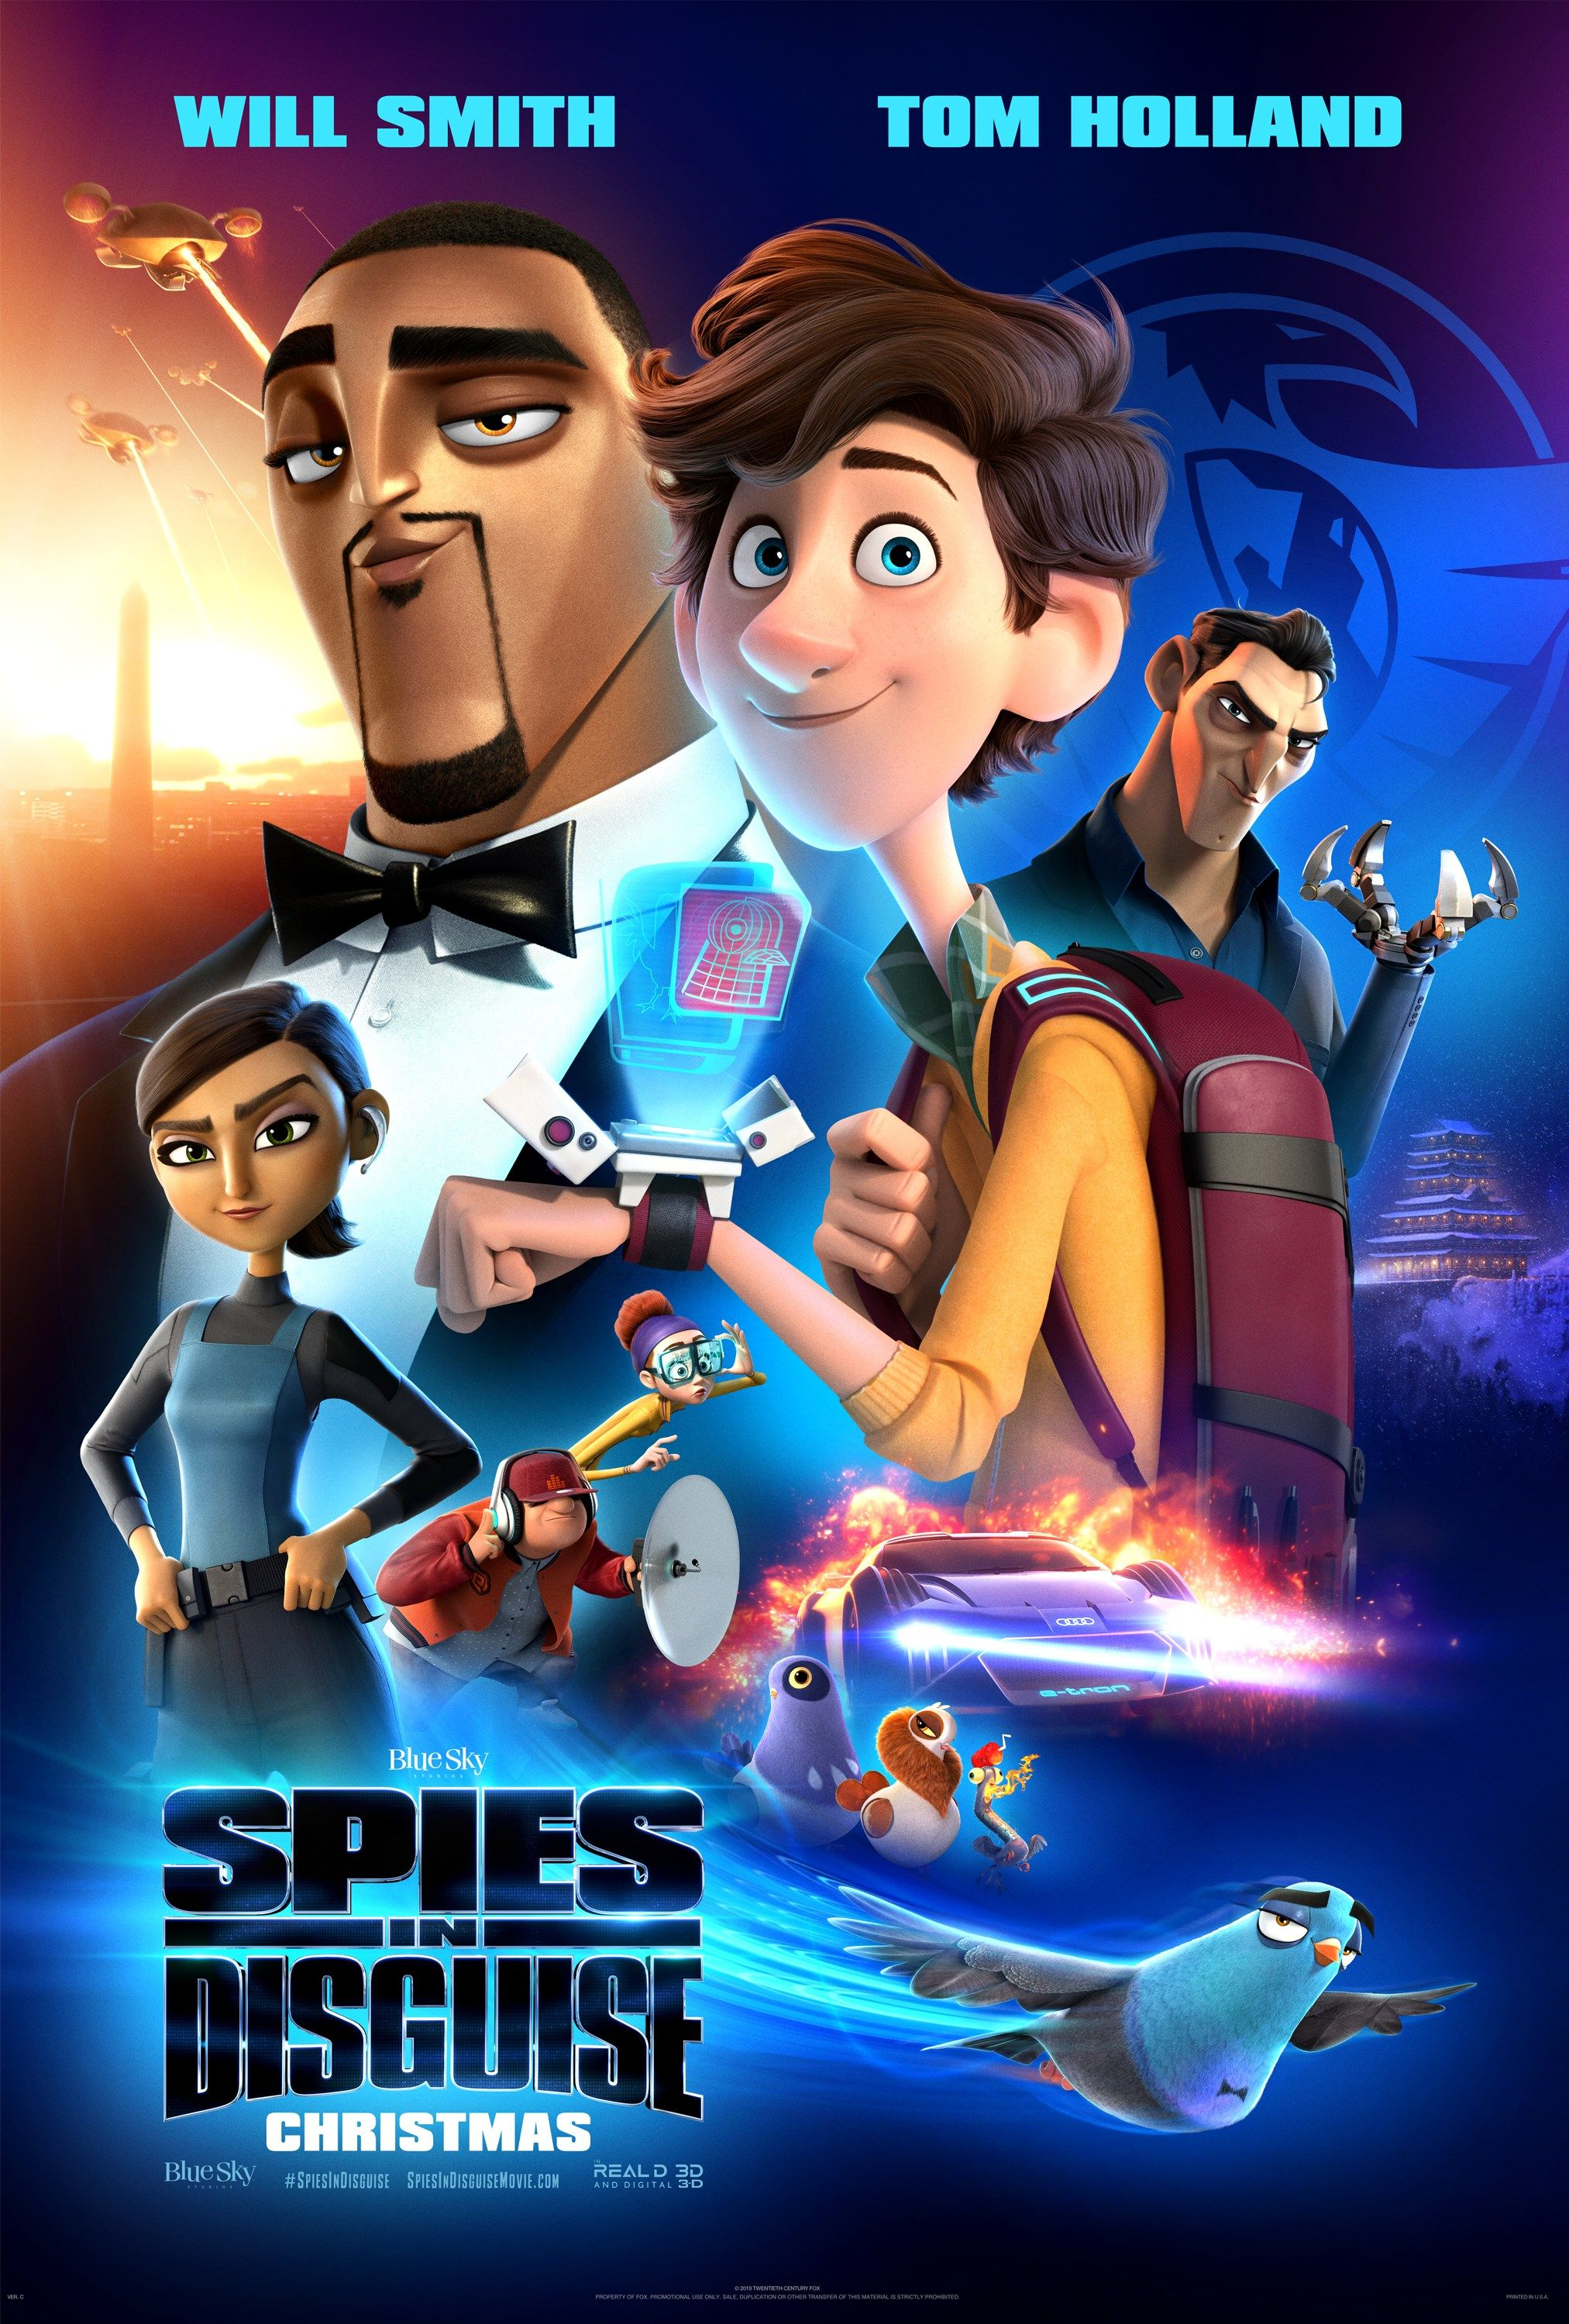 Spies In Disguise Parent Review Películas Completas Gratis Películas Completas Ver Peliculas Completas